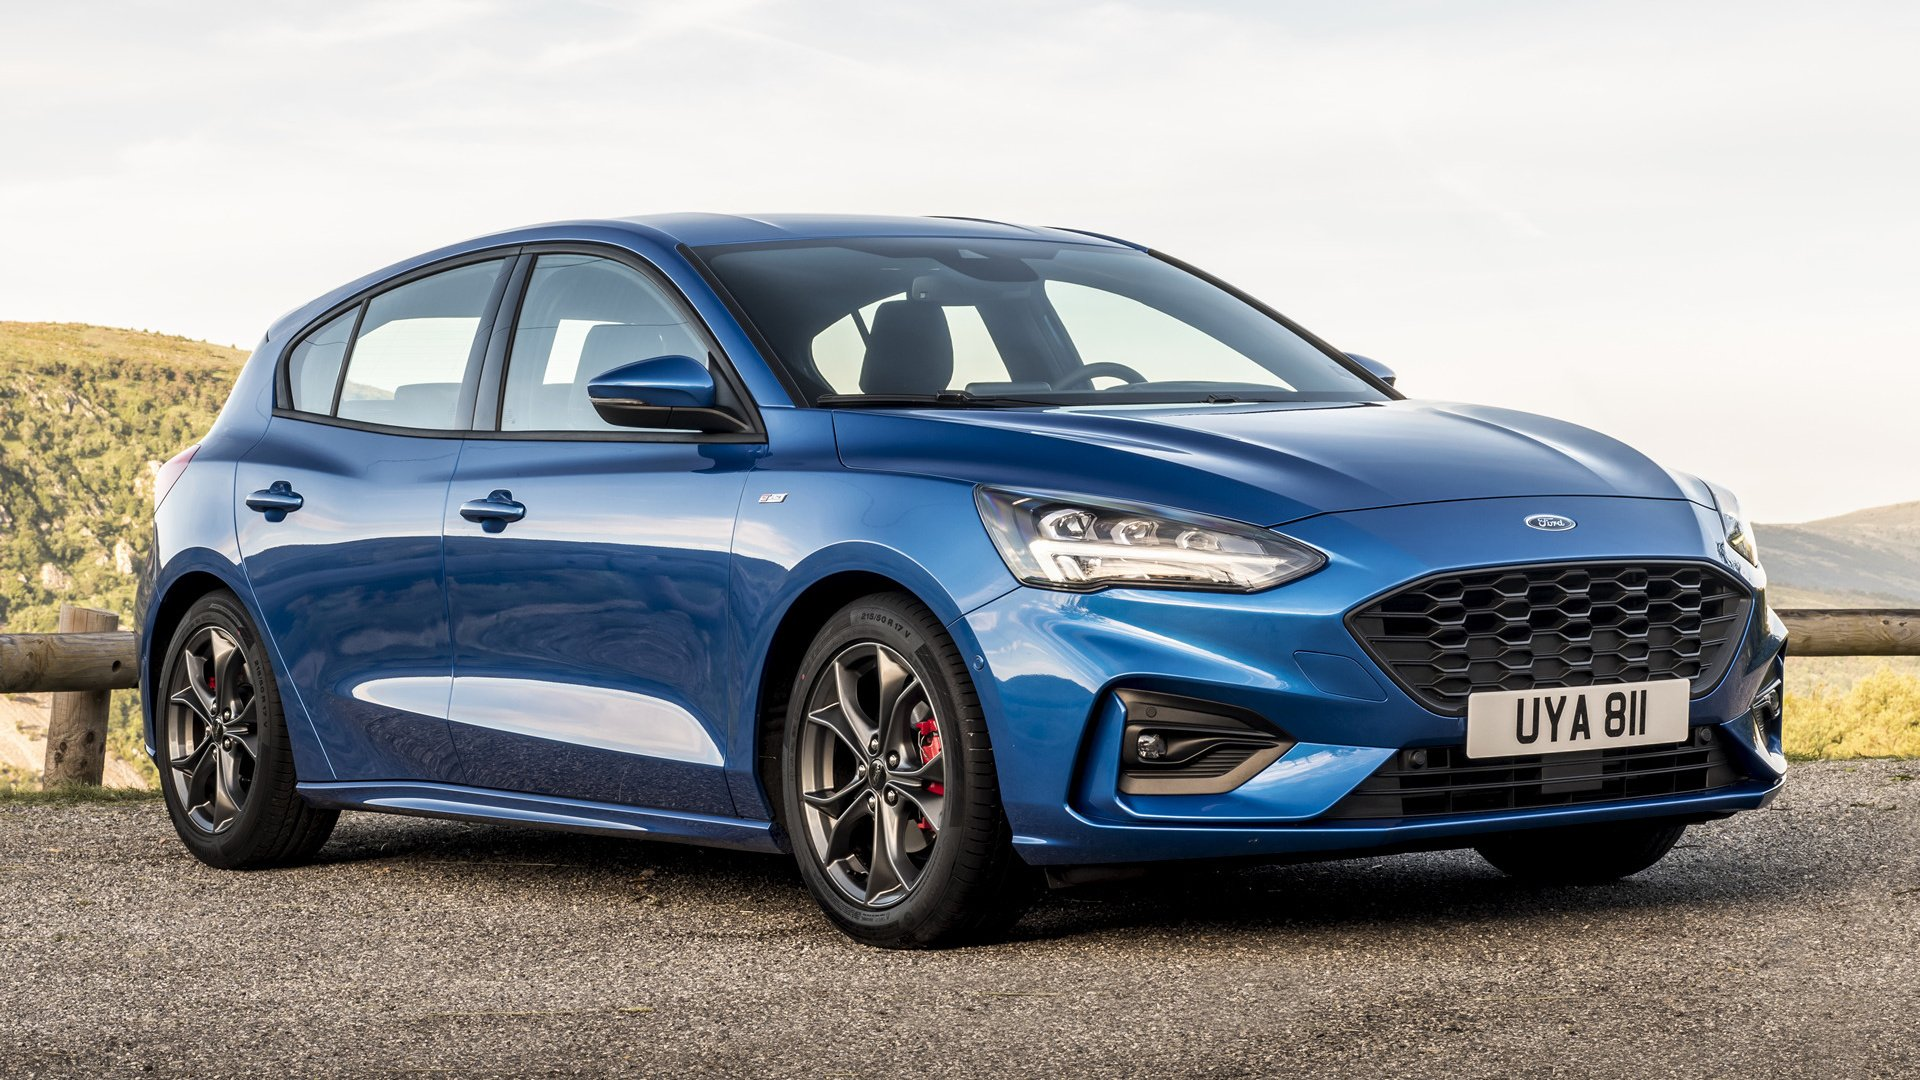 2018 Ford Focus St Line Hd Wallpaper Background Image 1920x1080